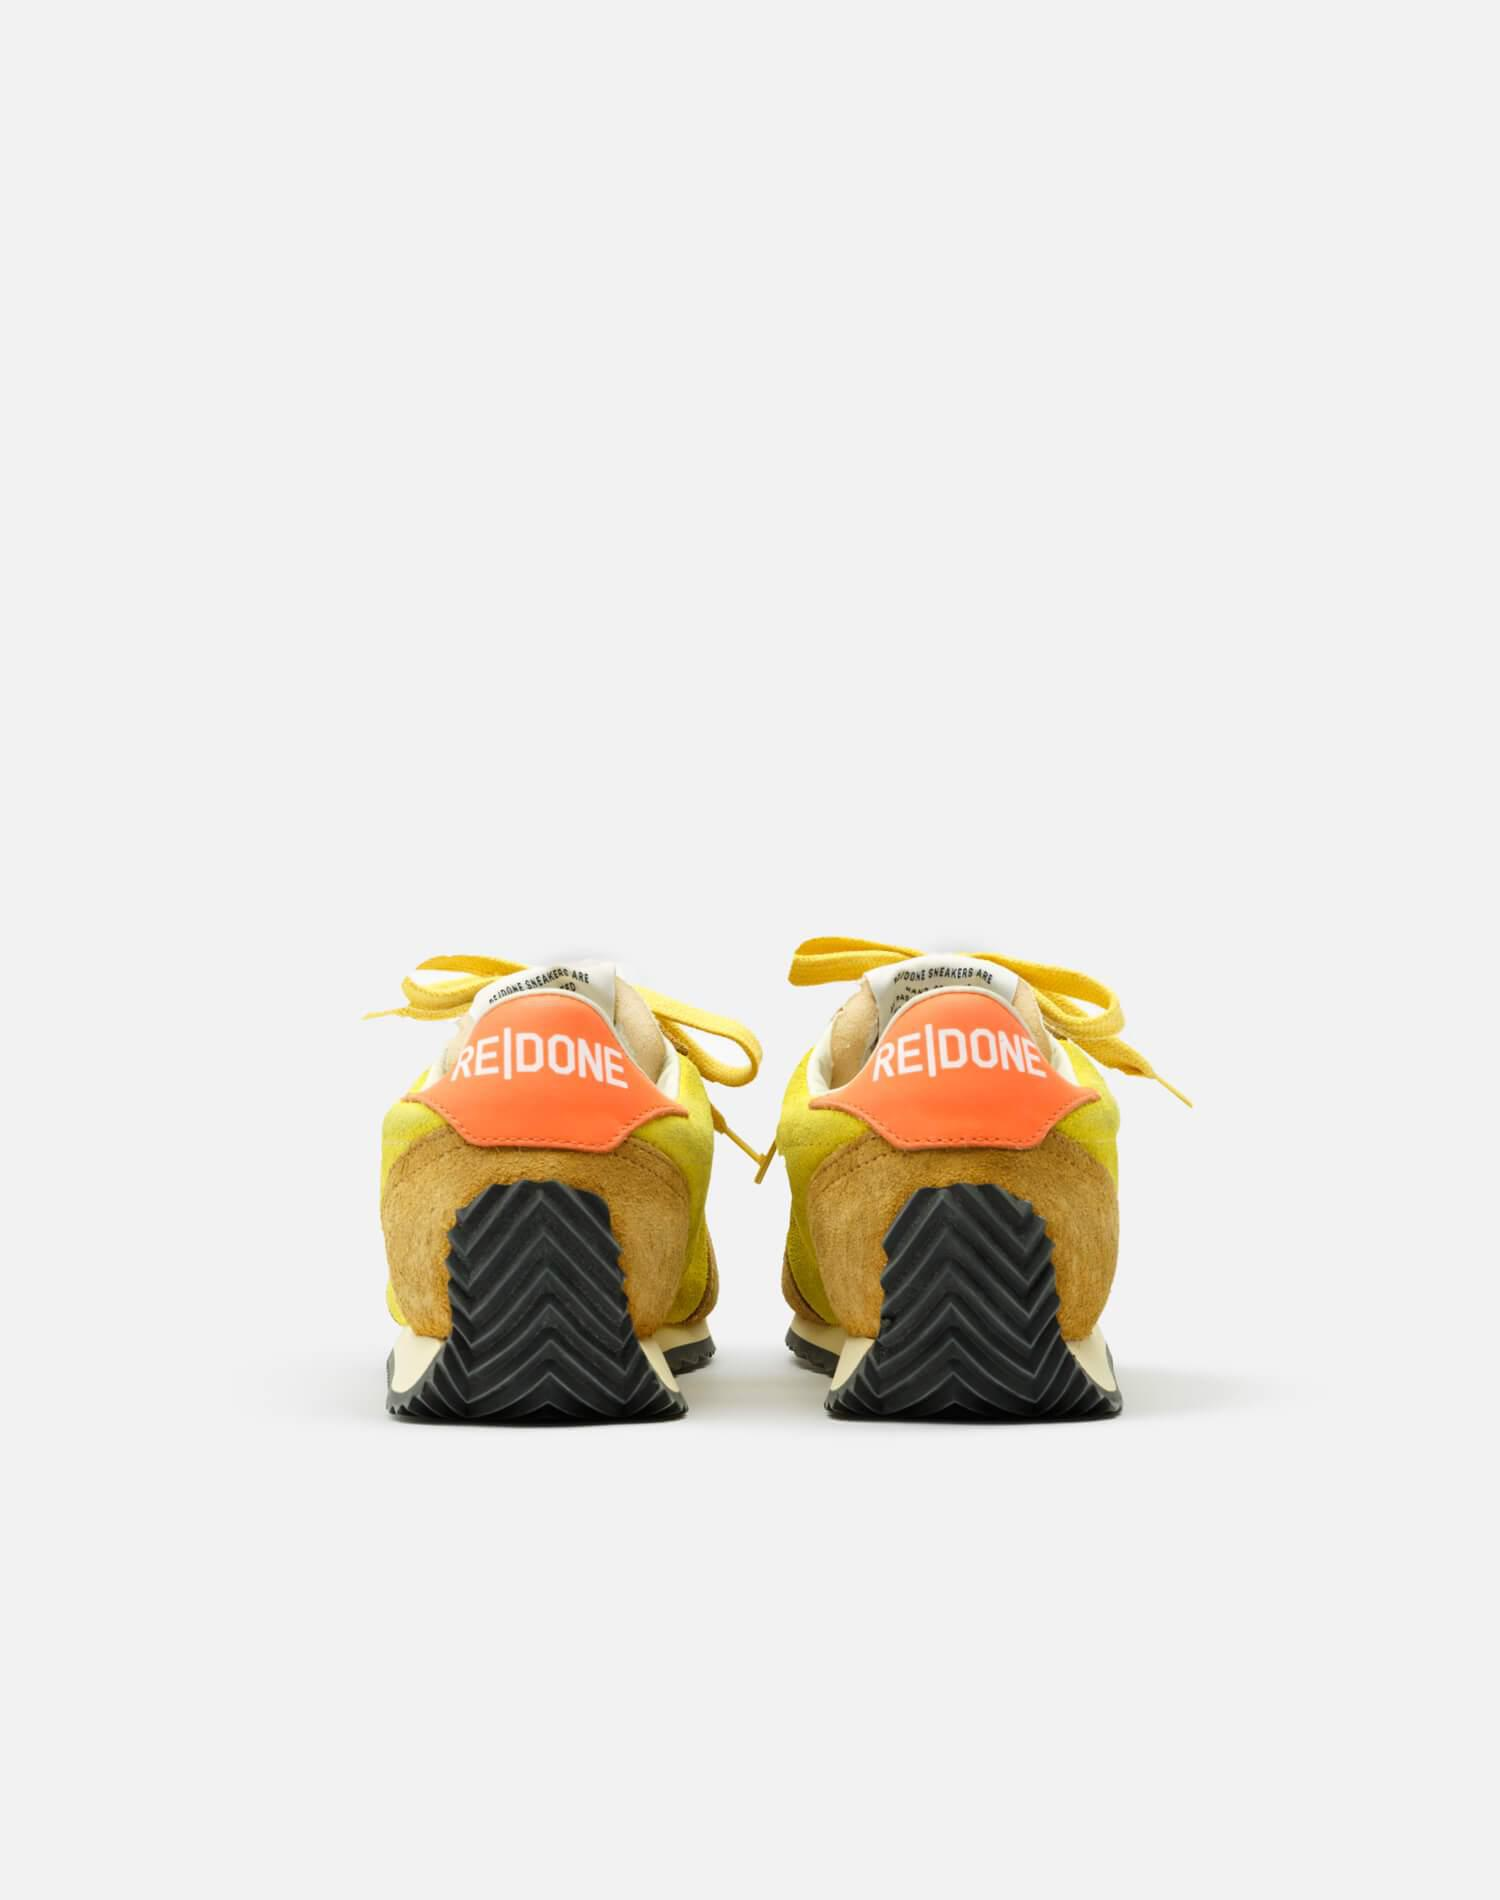 70s Runner Shoe - Lemon and Tan and Orange Suede 3